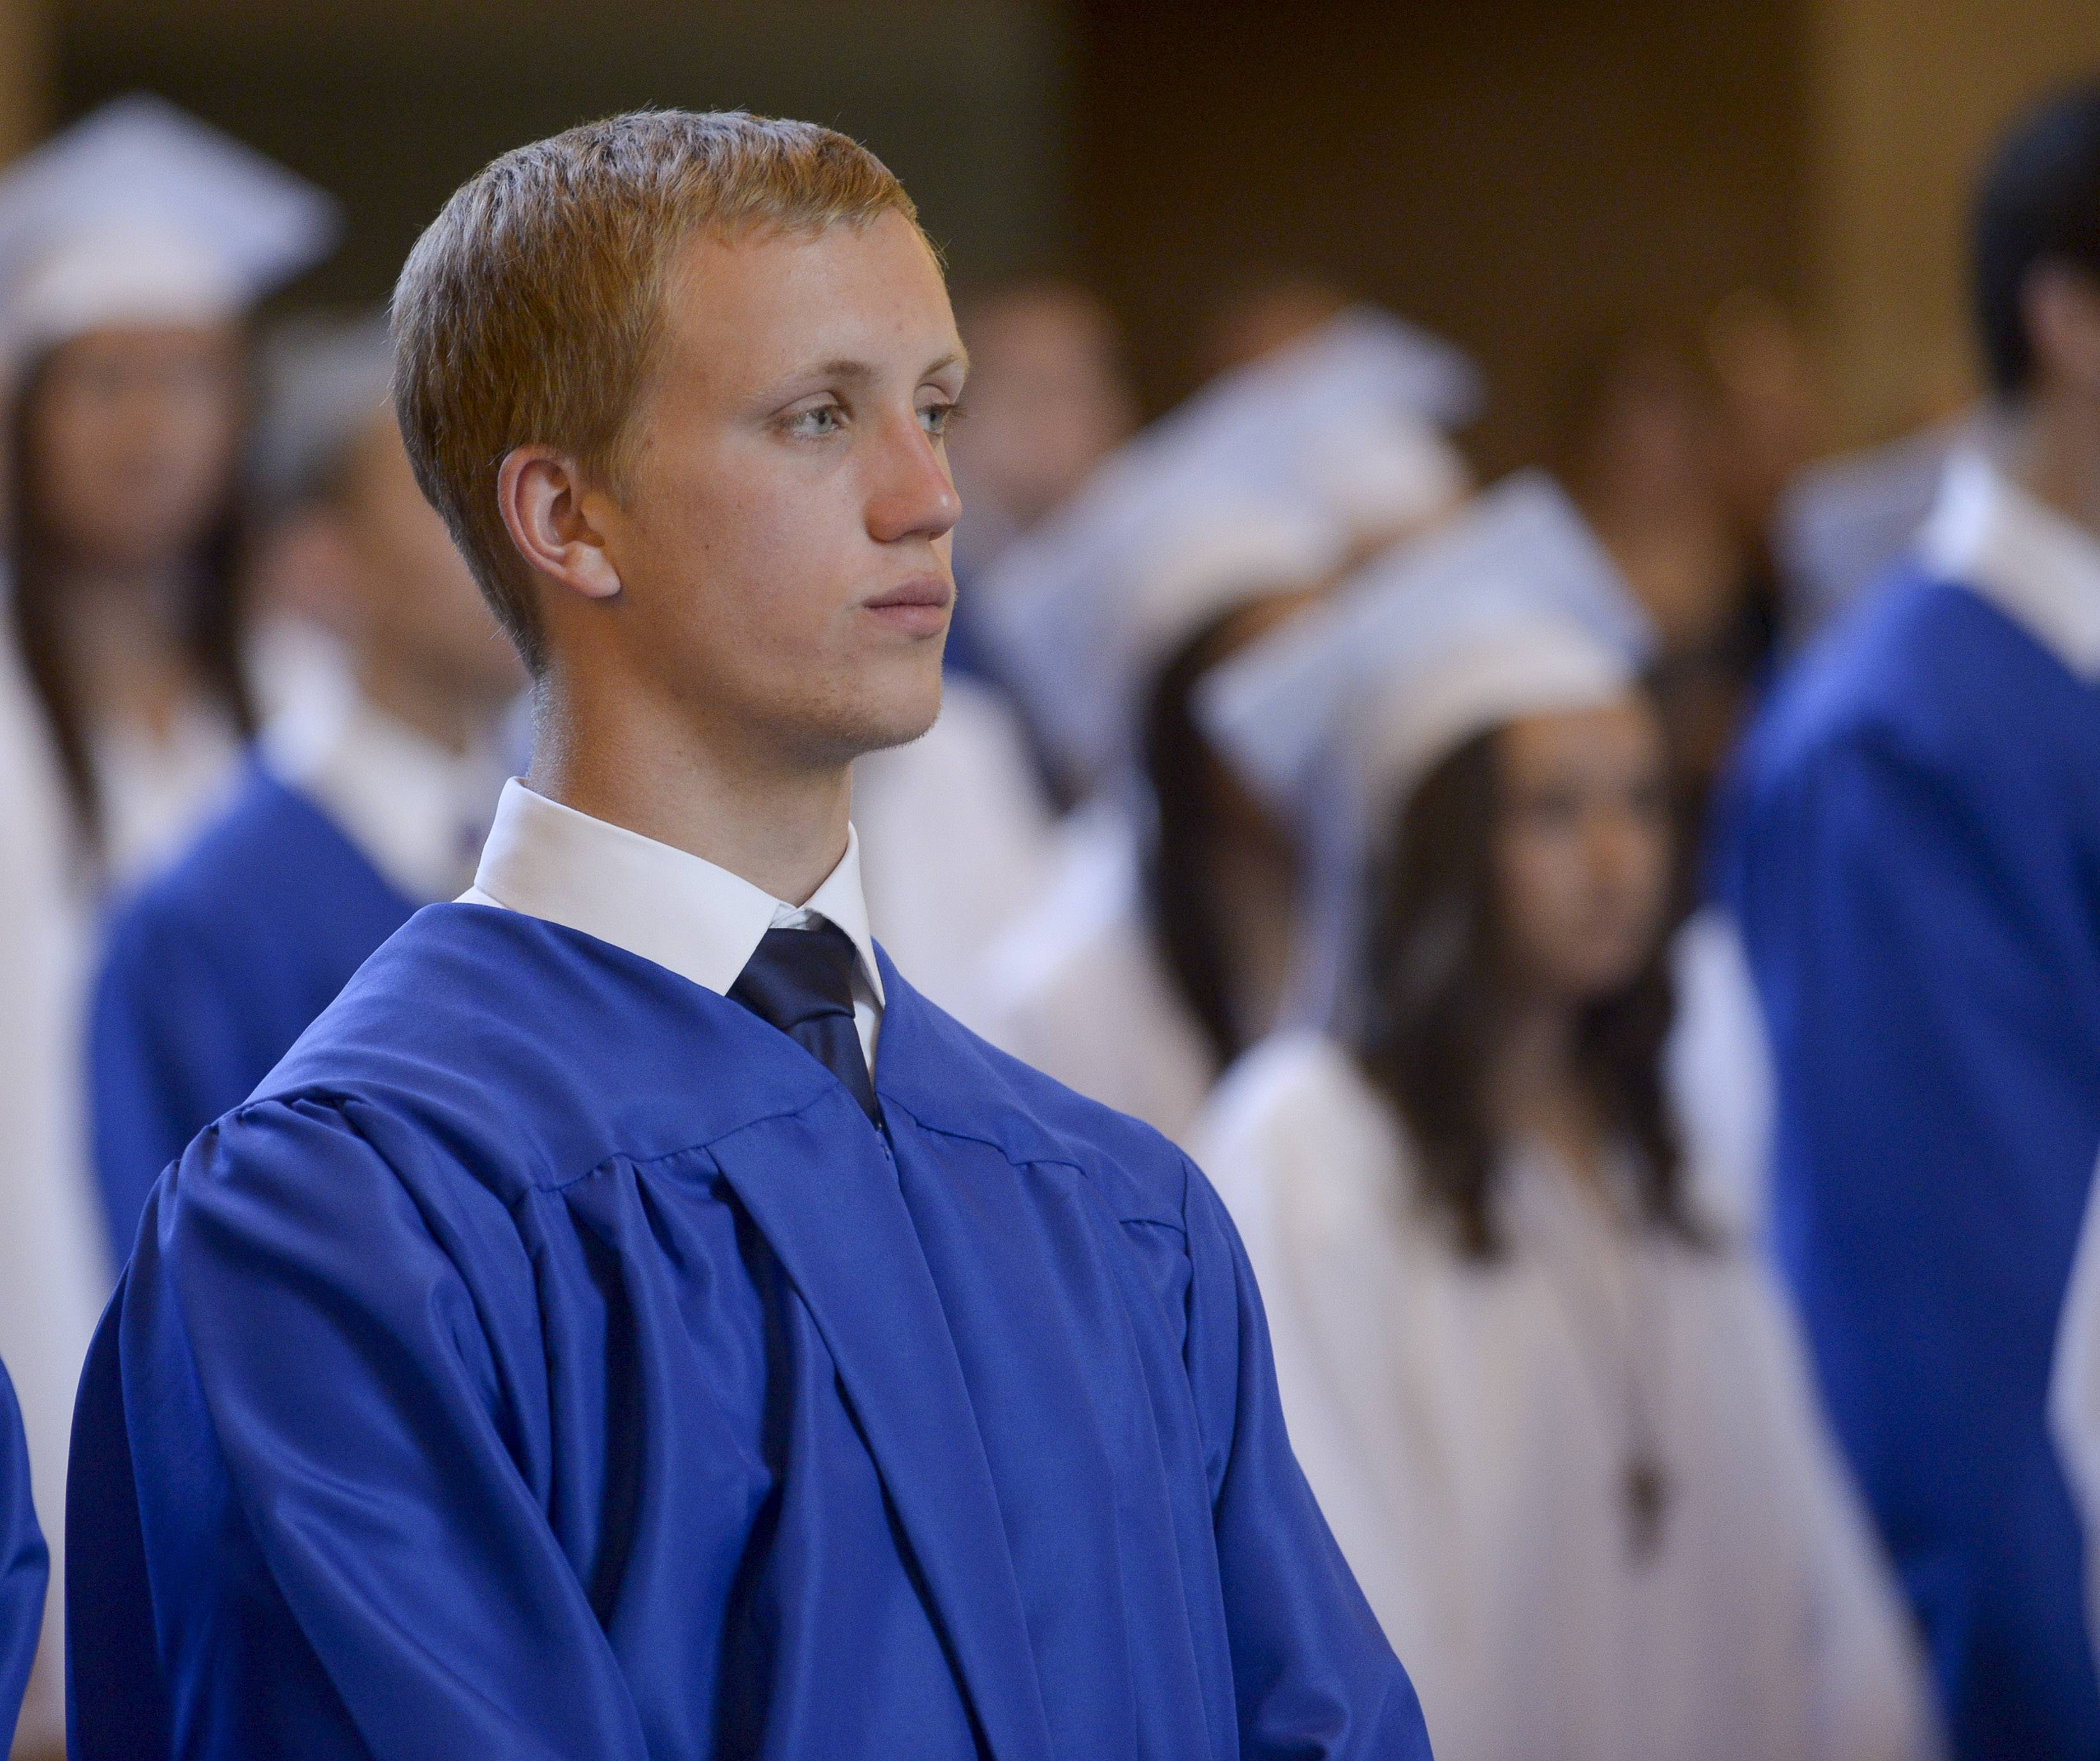 St. Francis High School held its graduation Sunday, May 18 at St. John Neumann Church in St. Charles